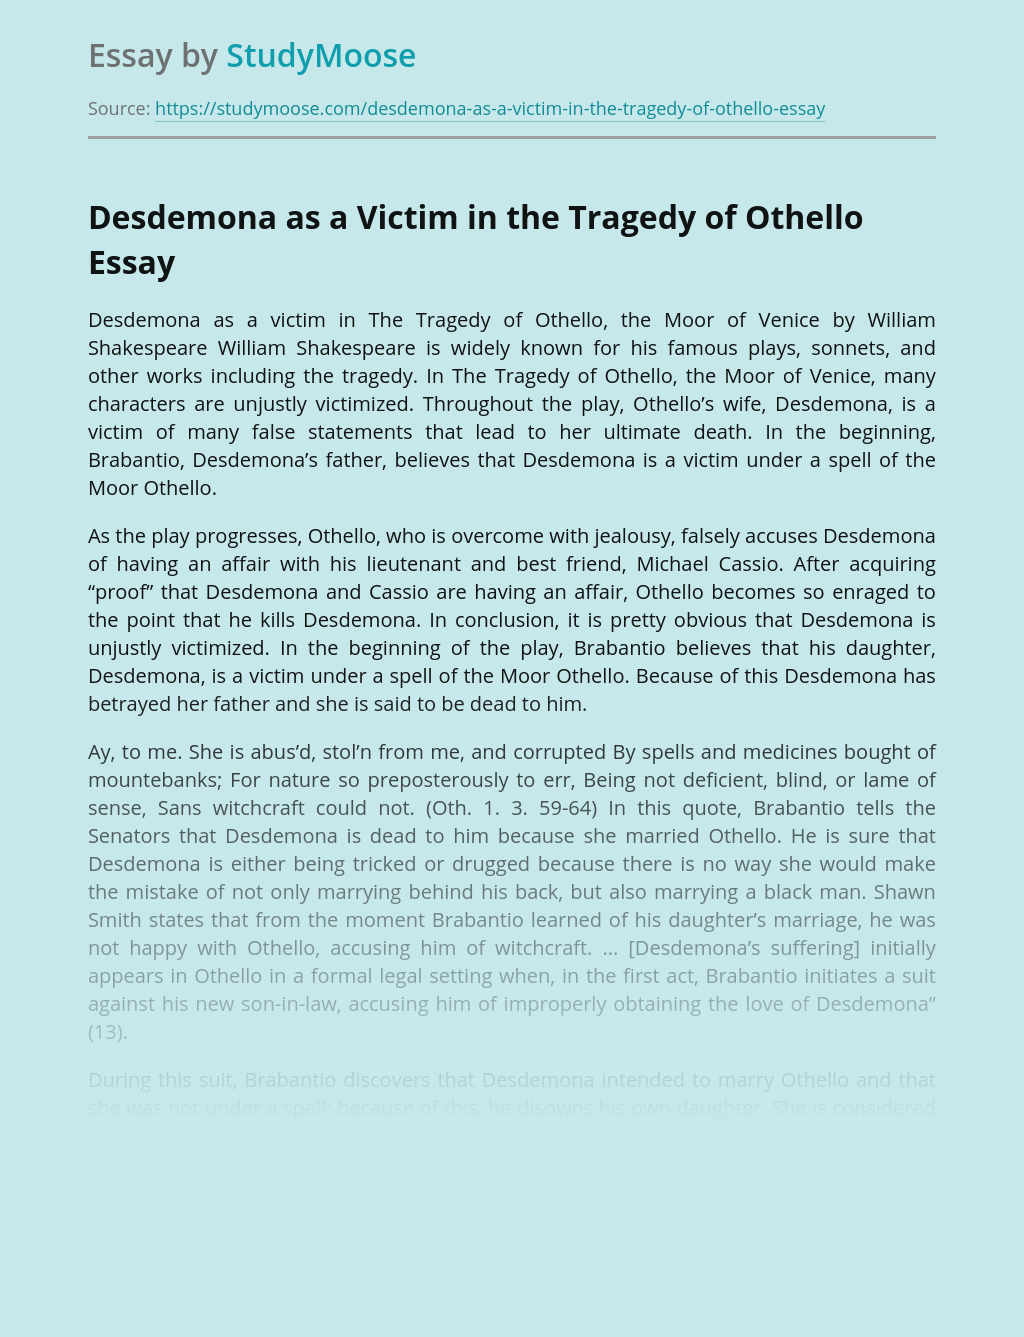 Desdemona as a Victim in the Tragedy of Othello